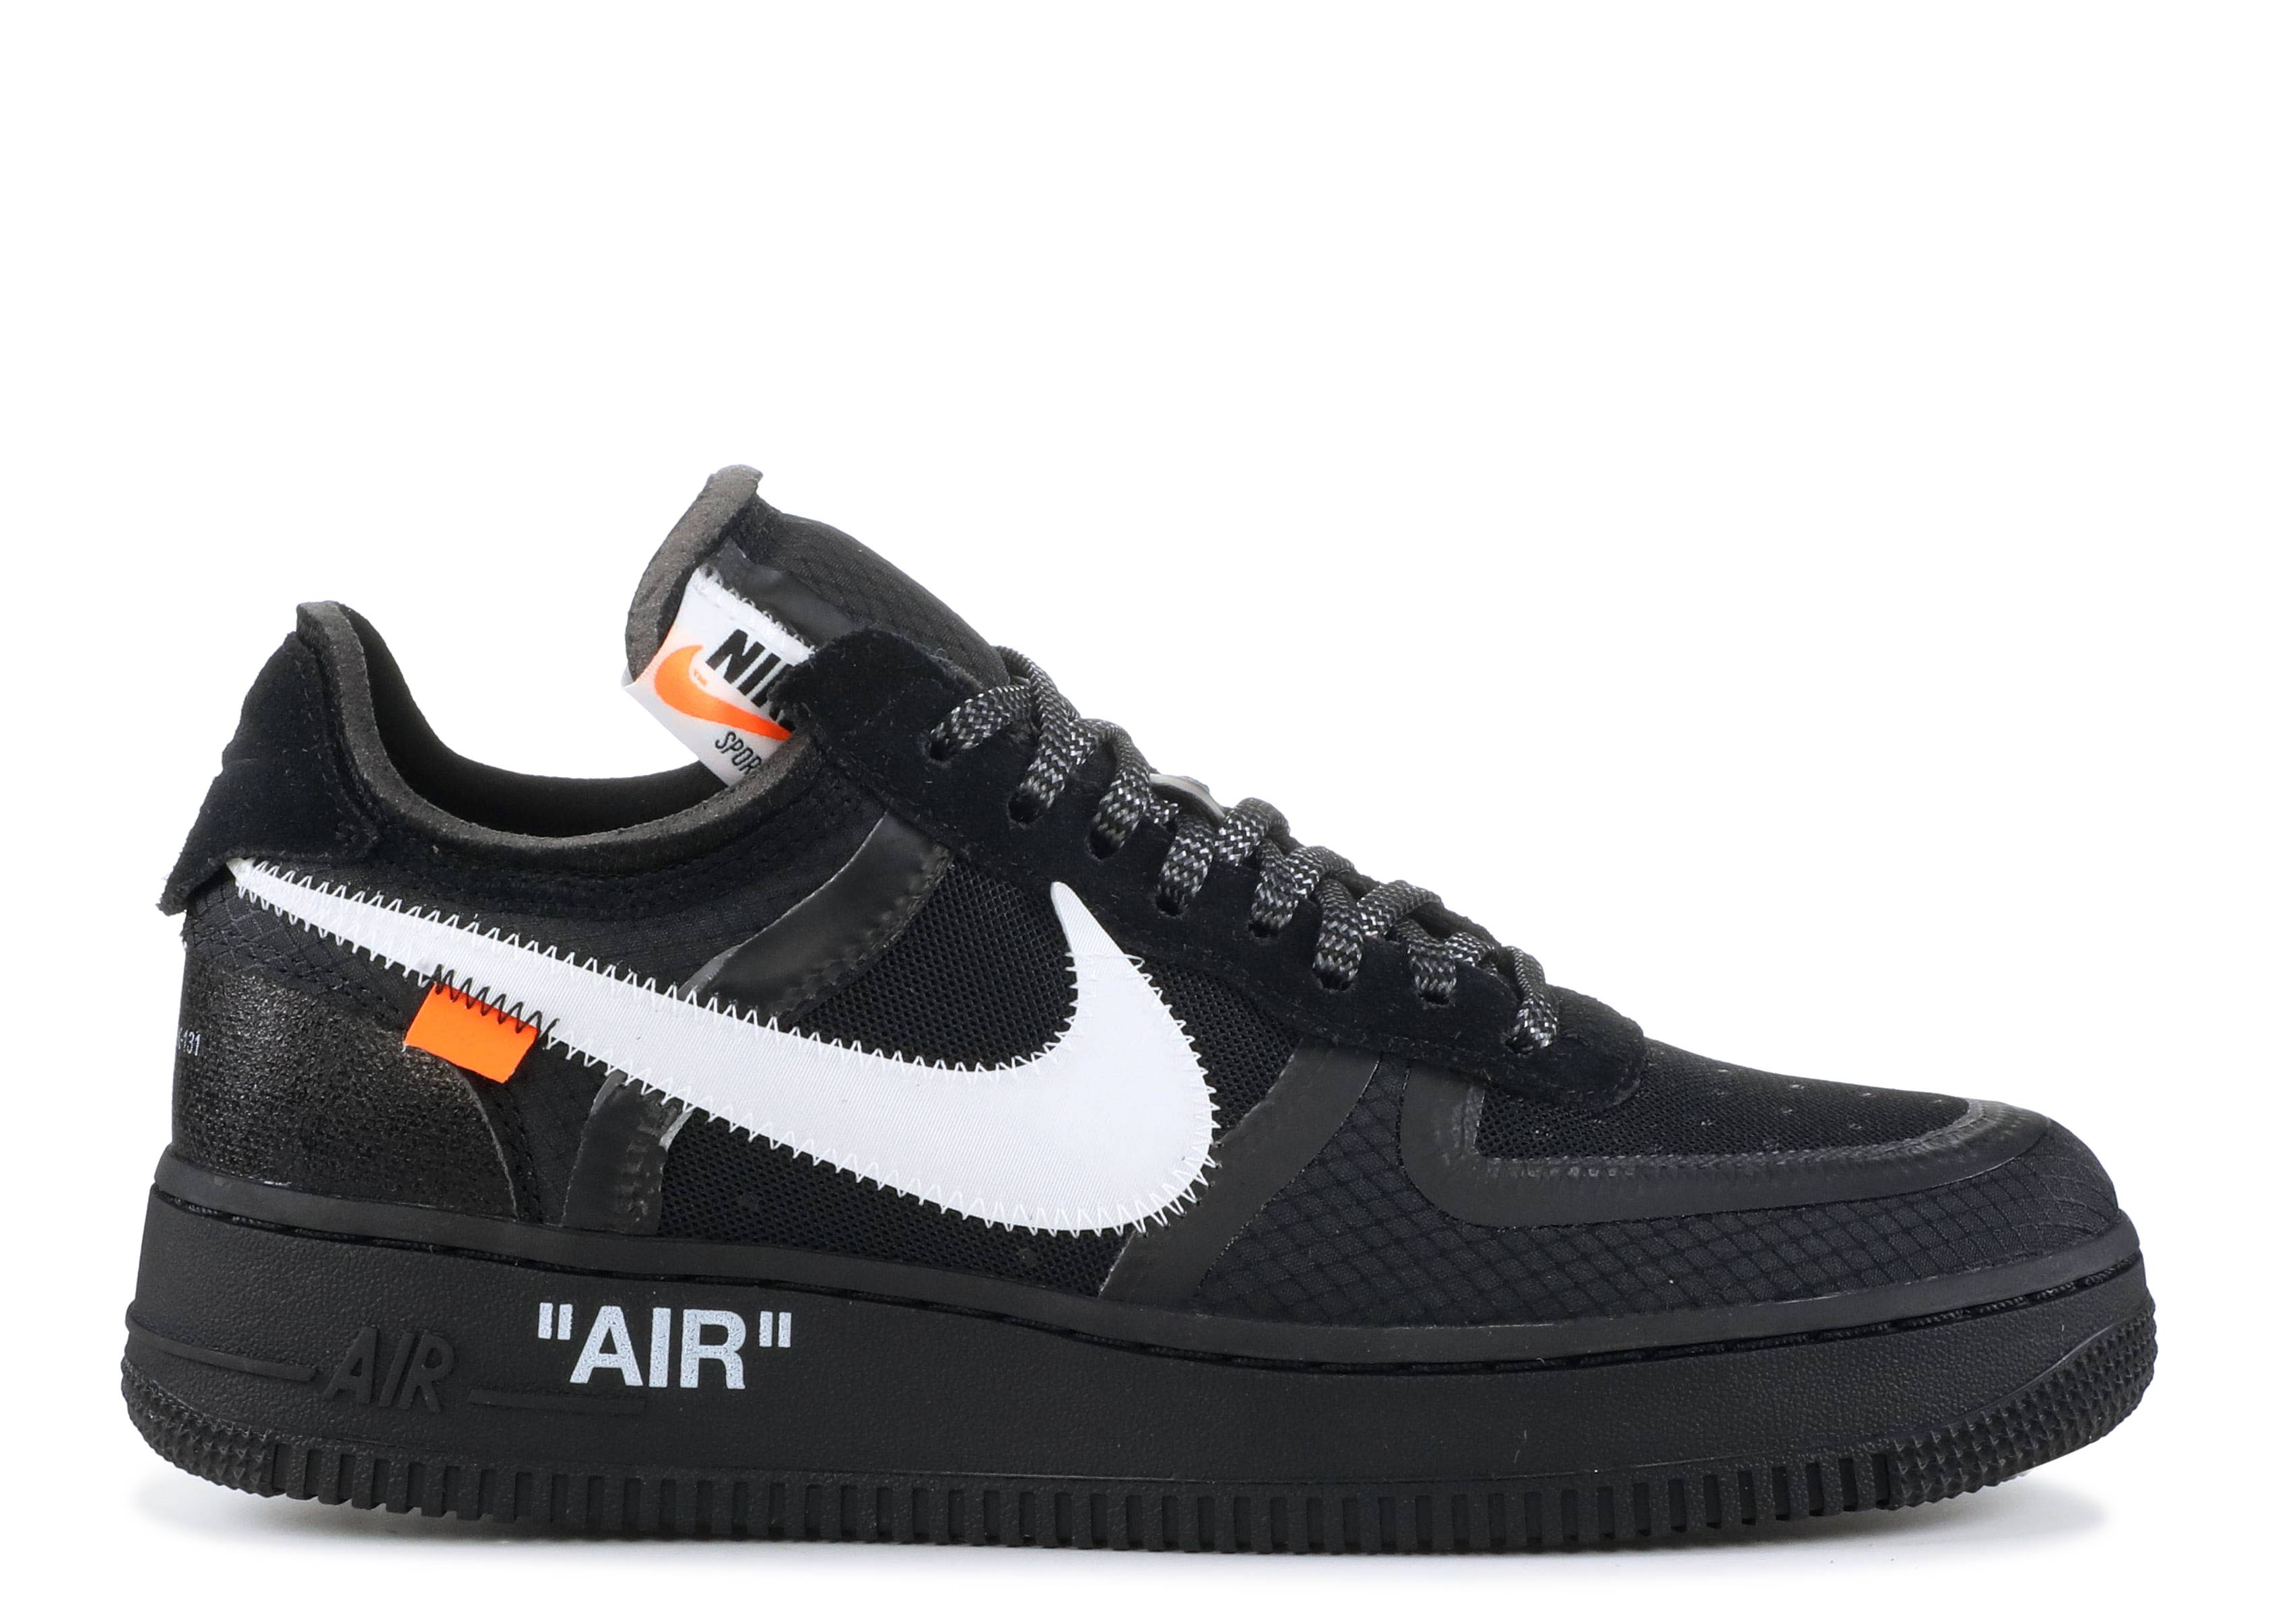 Usual Definitivo resbalón  Off White X Air Force 1 Low 'Black' - Nike - AO4606 001 -  black/white-cone-black | Flight Club